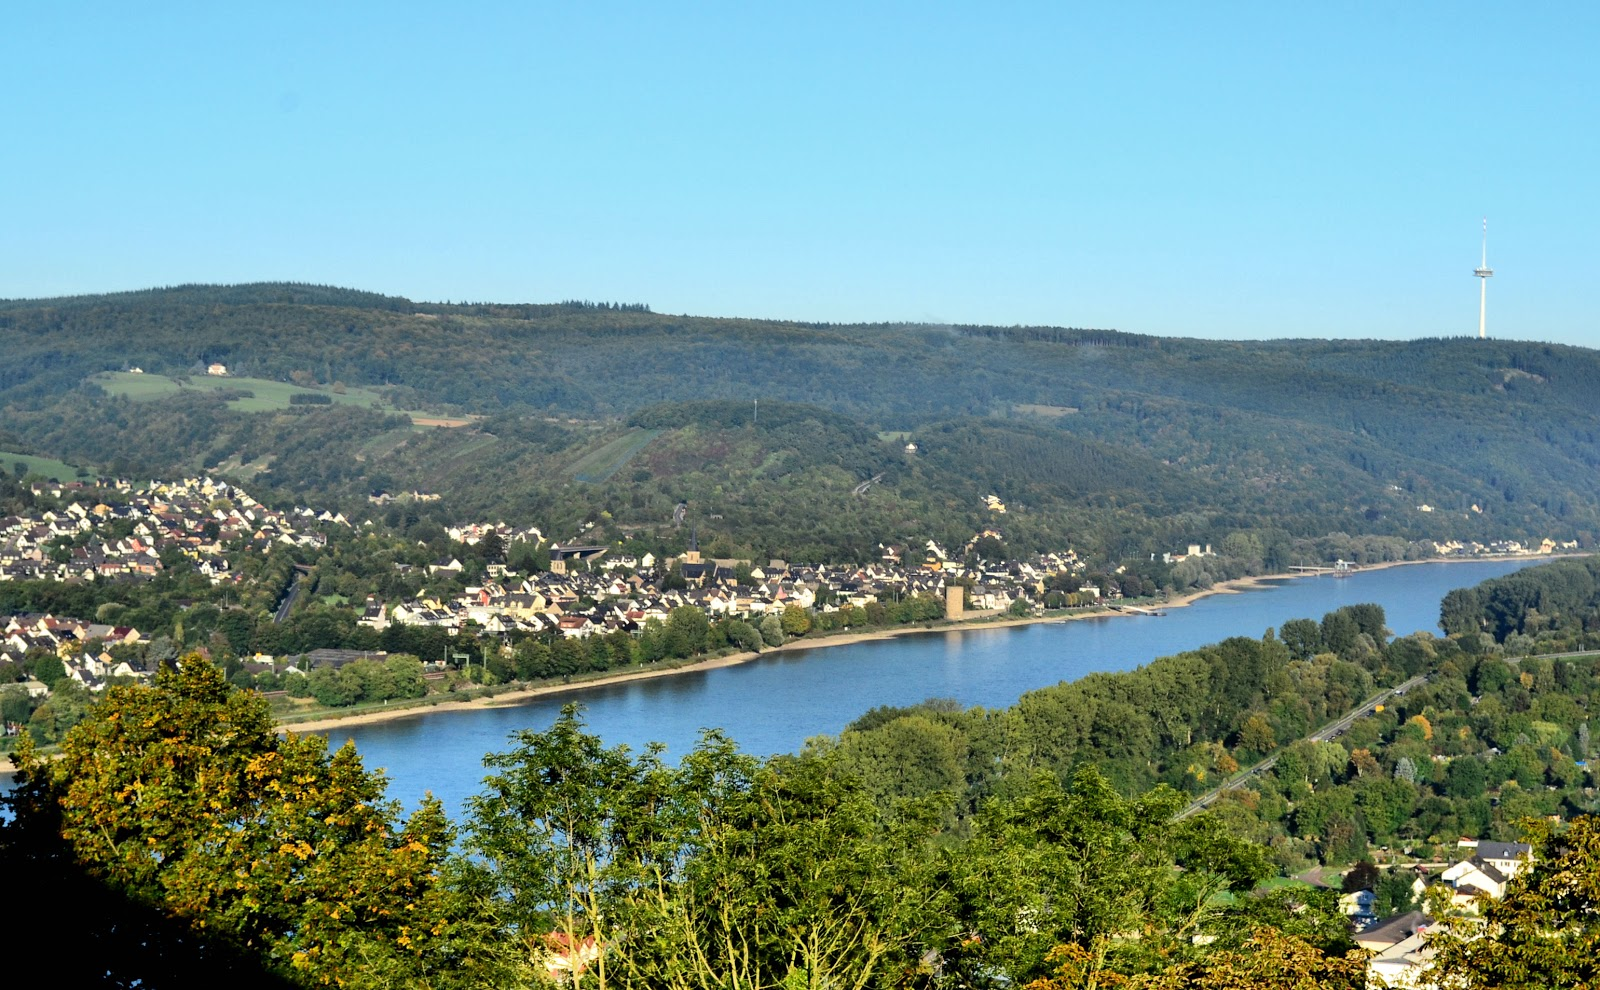 This view of the venerable Rhine was taken from Marksburg Castle. Beyond the flowing waters, Brey and Rhens lie on the opposite bank.